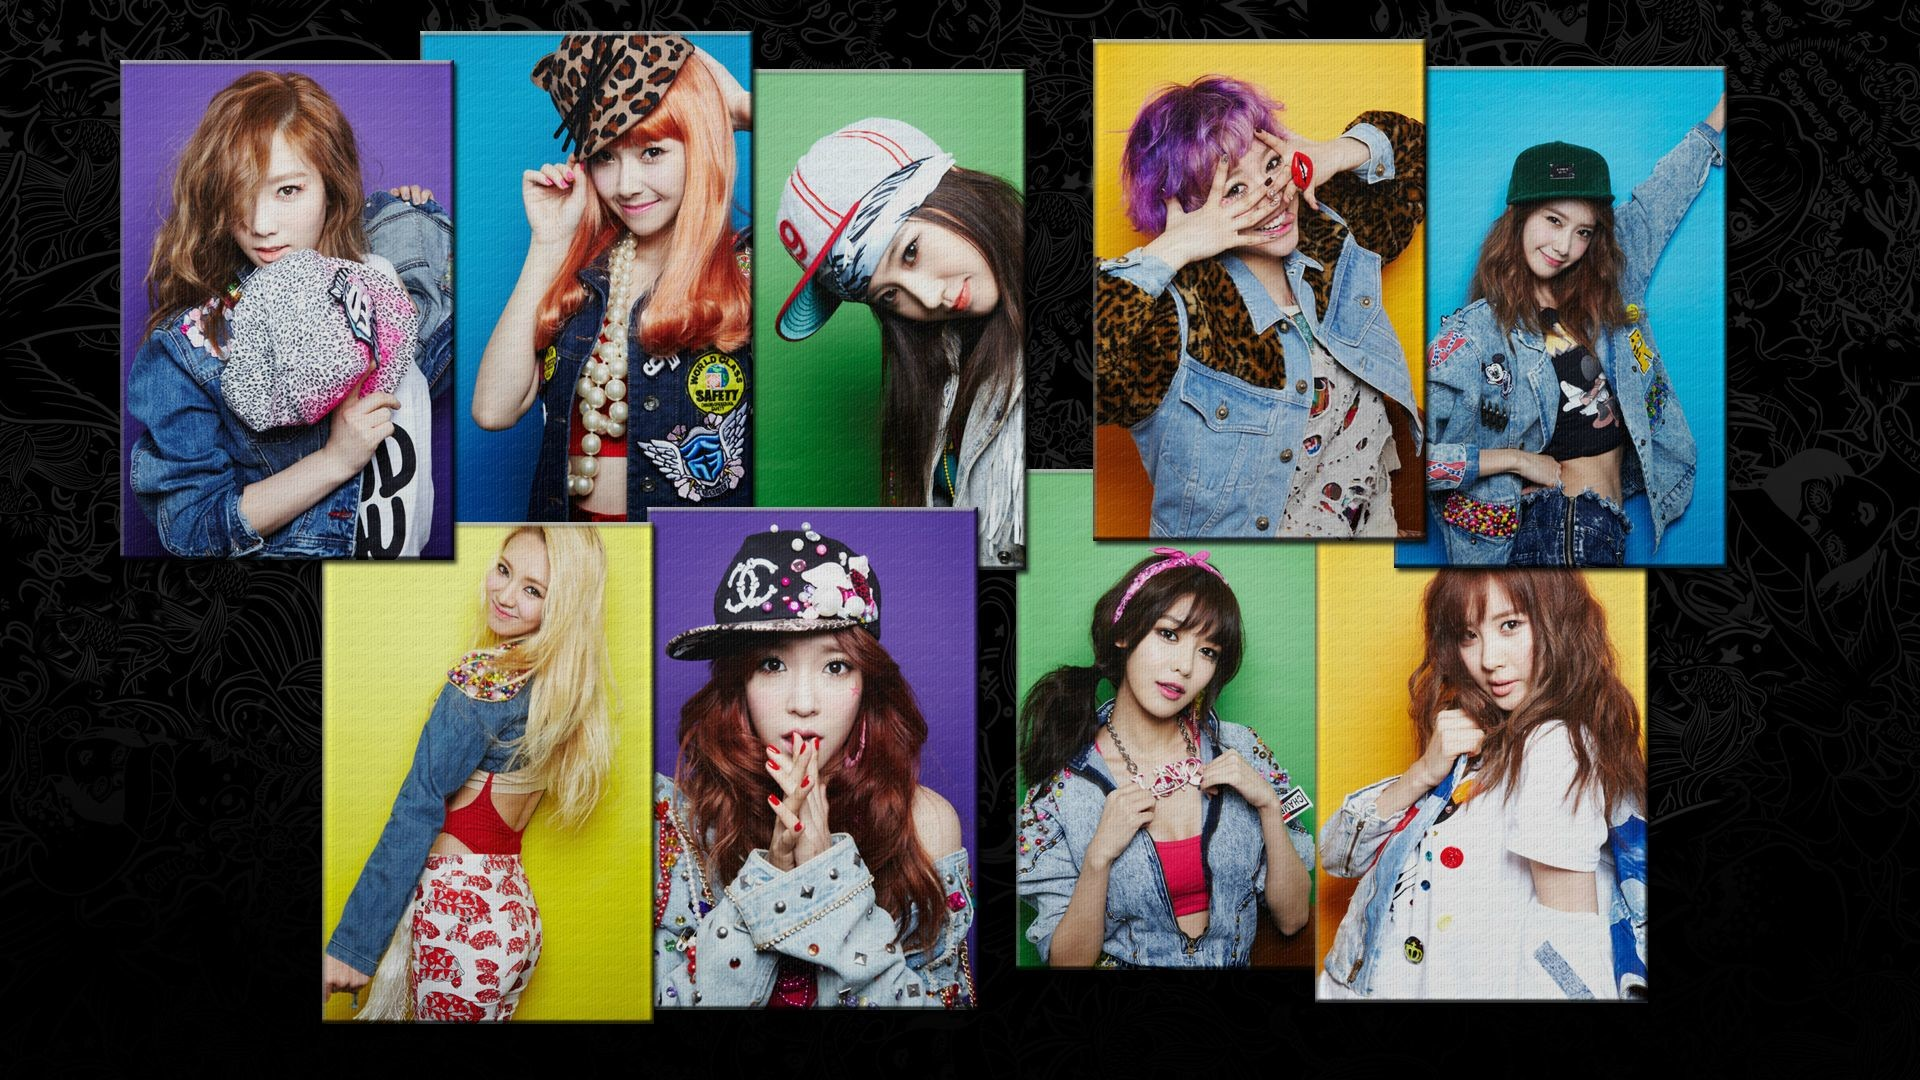 Kpop Desktop Wallpaper 75 Images